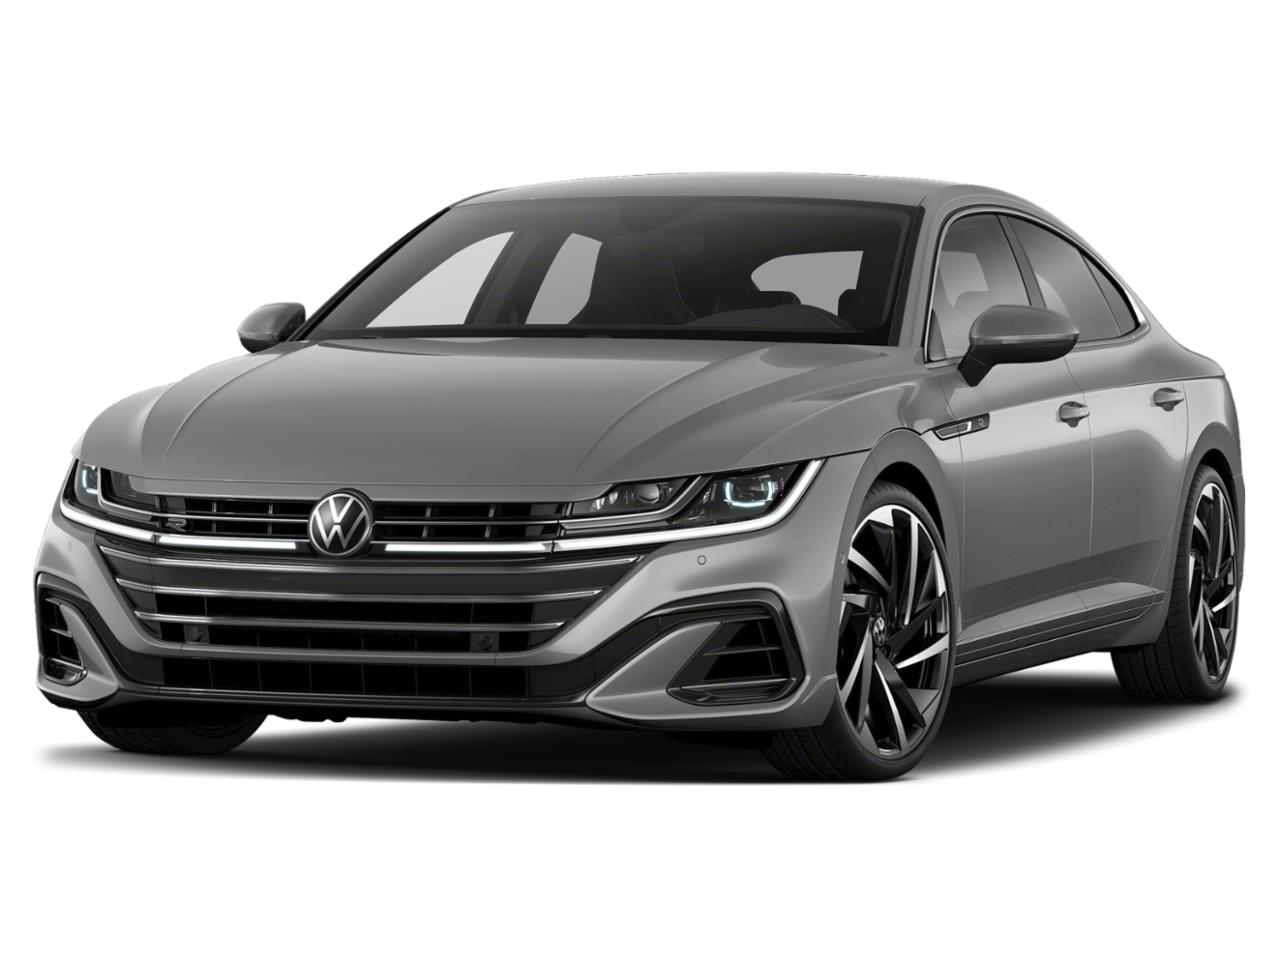 2021 Volkswagen Arteon Vehicle Photo in San Antonio, TX 78257